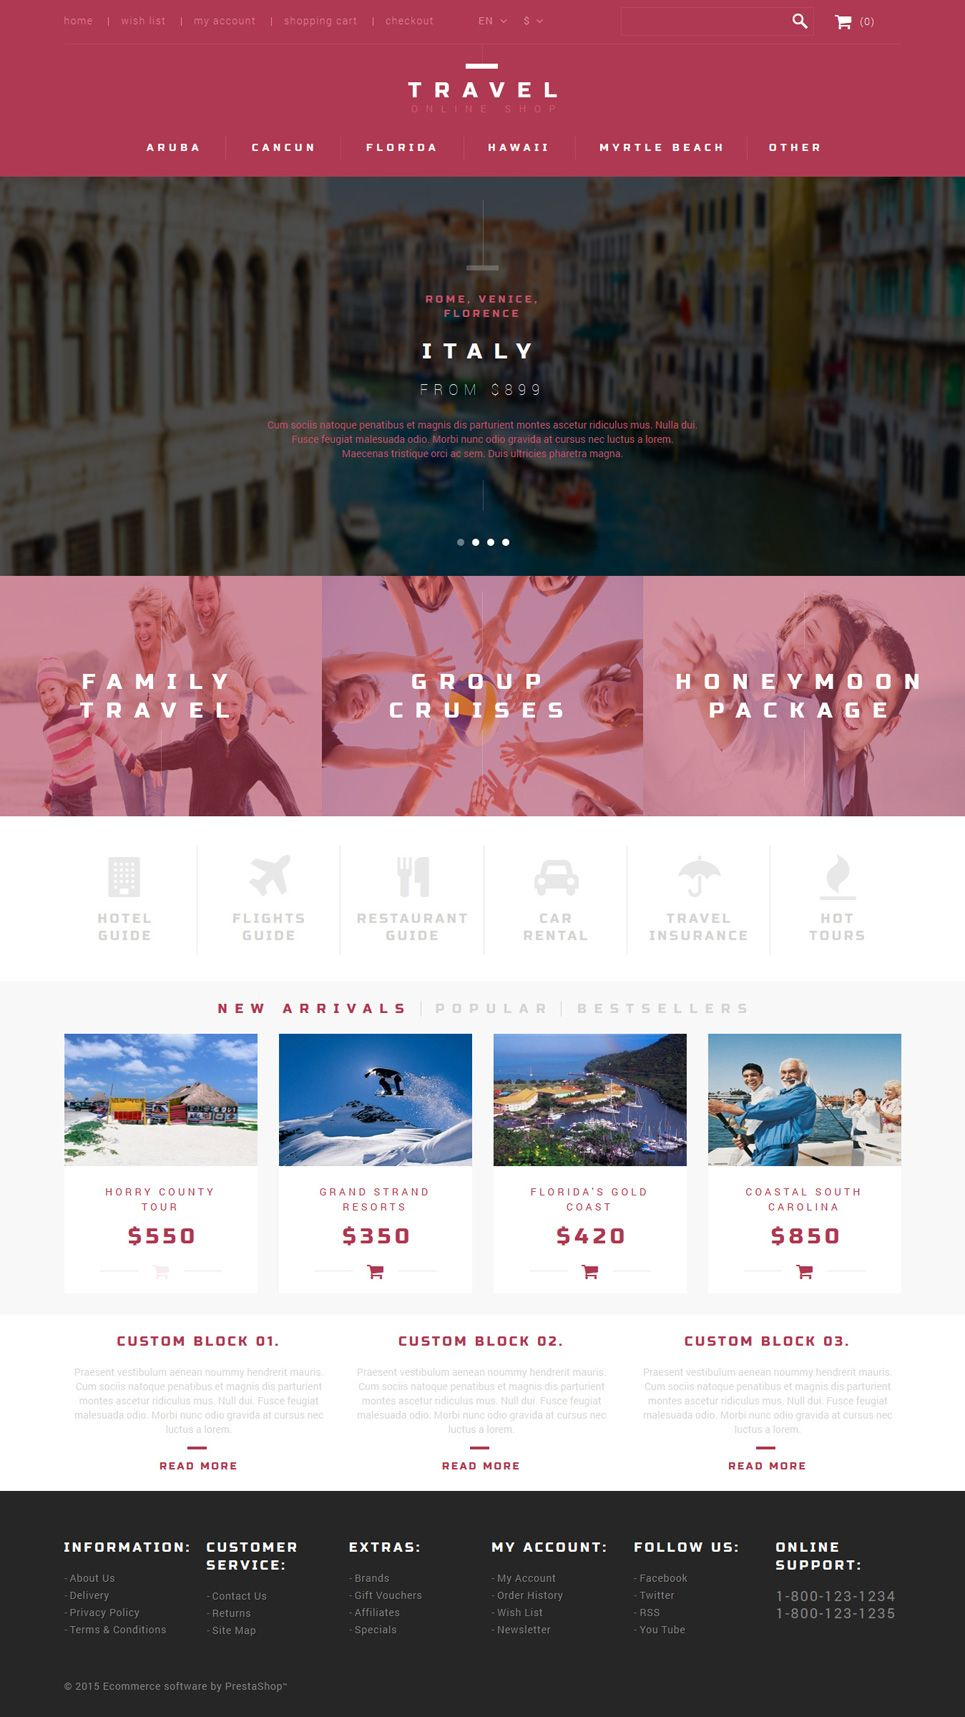 13 Awesome Travel Agents Travel Gear Ecommerce Shop Templates Travel Prestashop Themes Buildify Prestashop Themes Travel Agent Travel Agency